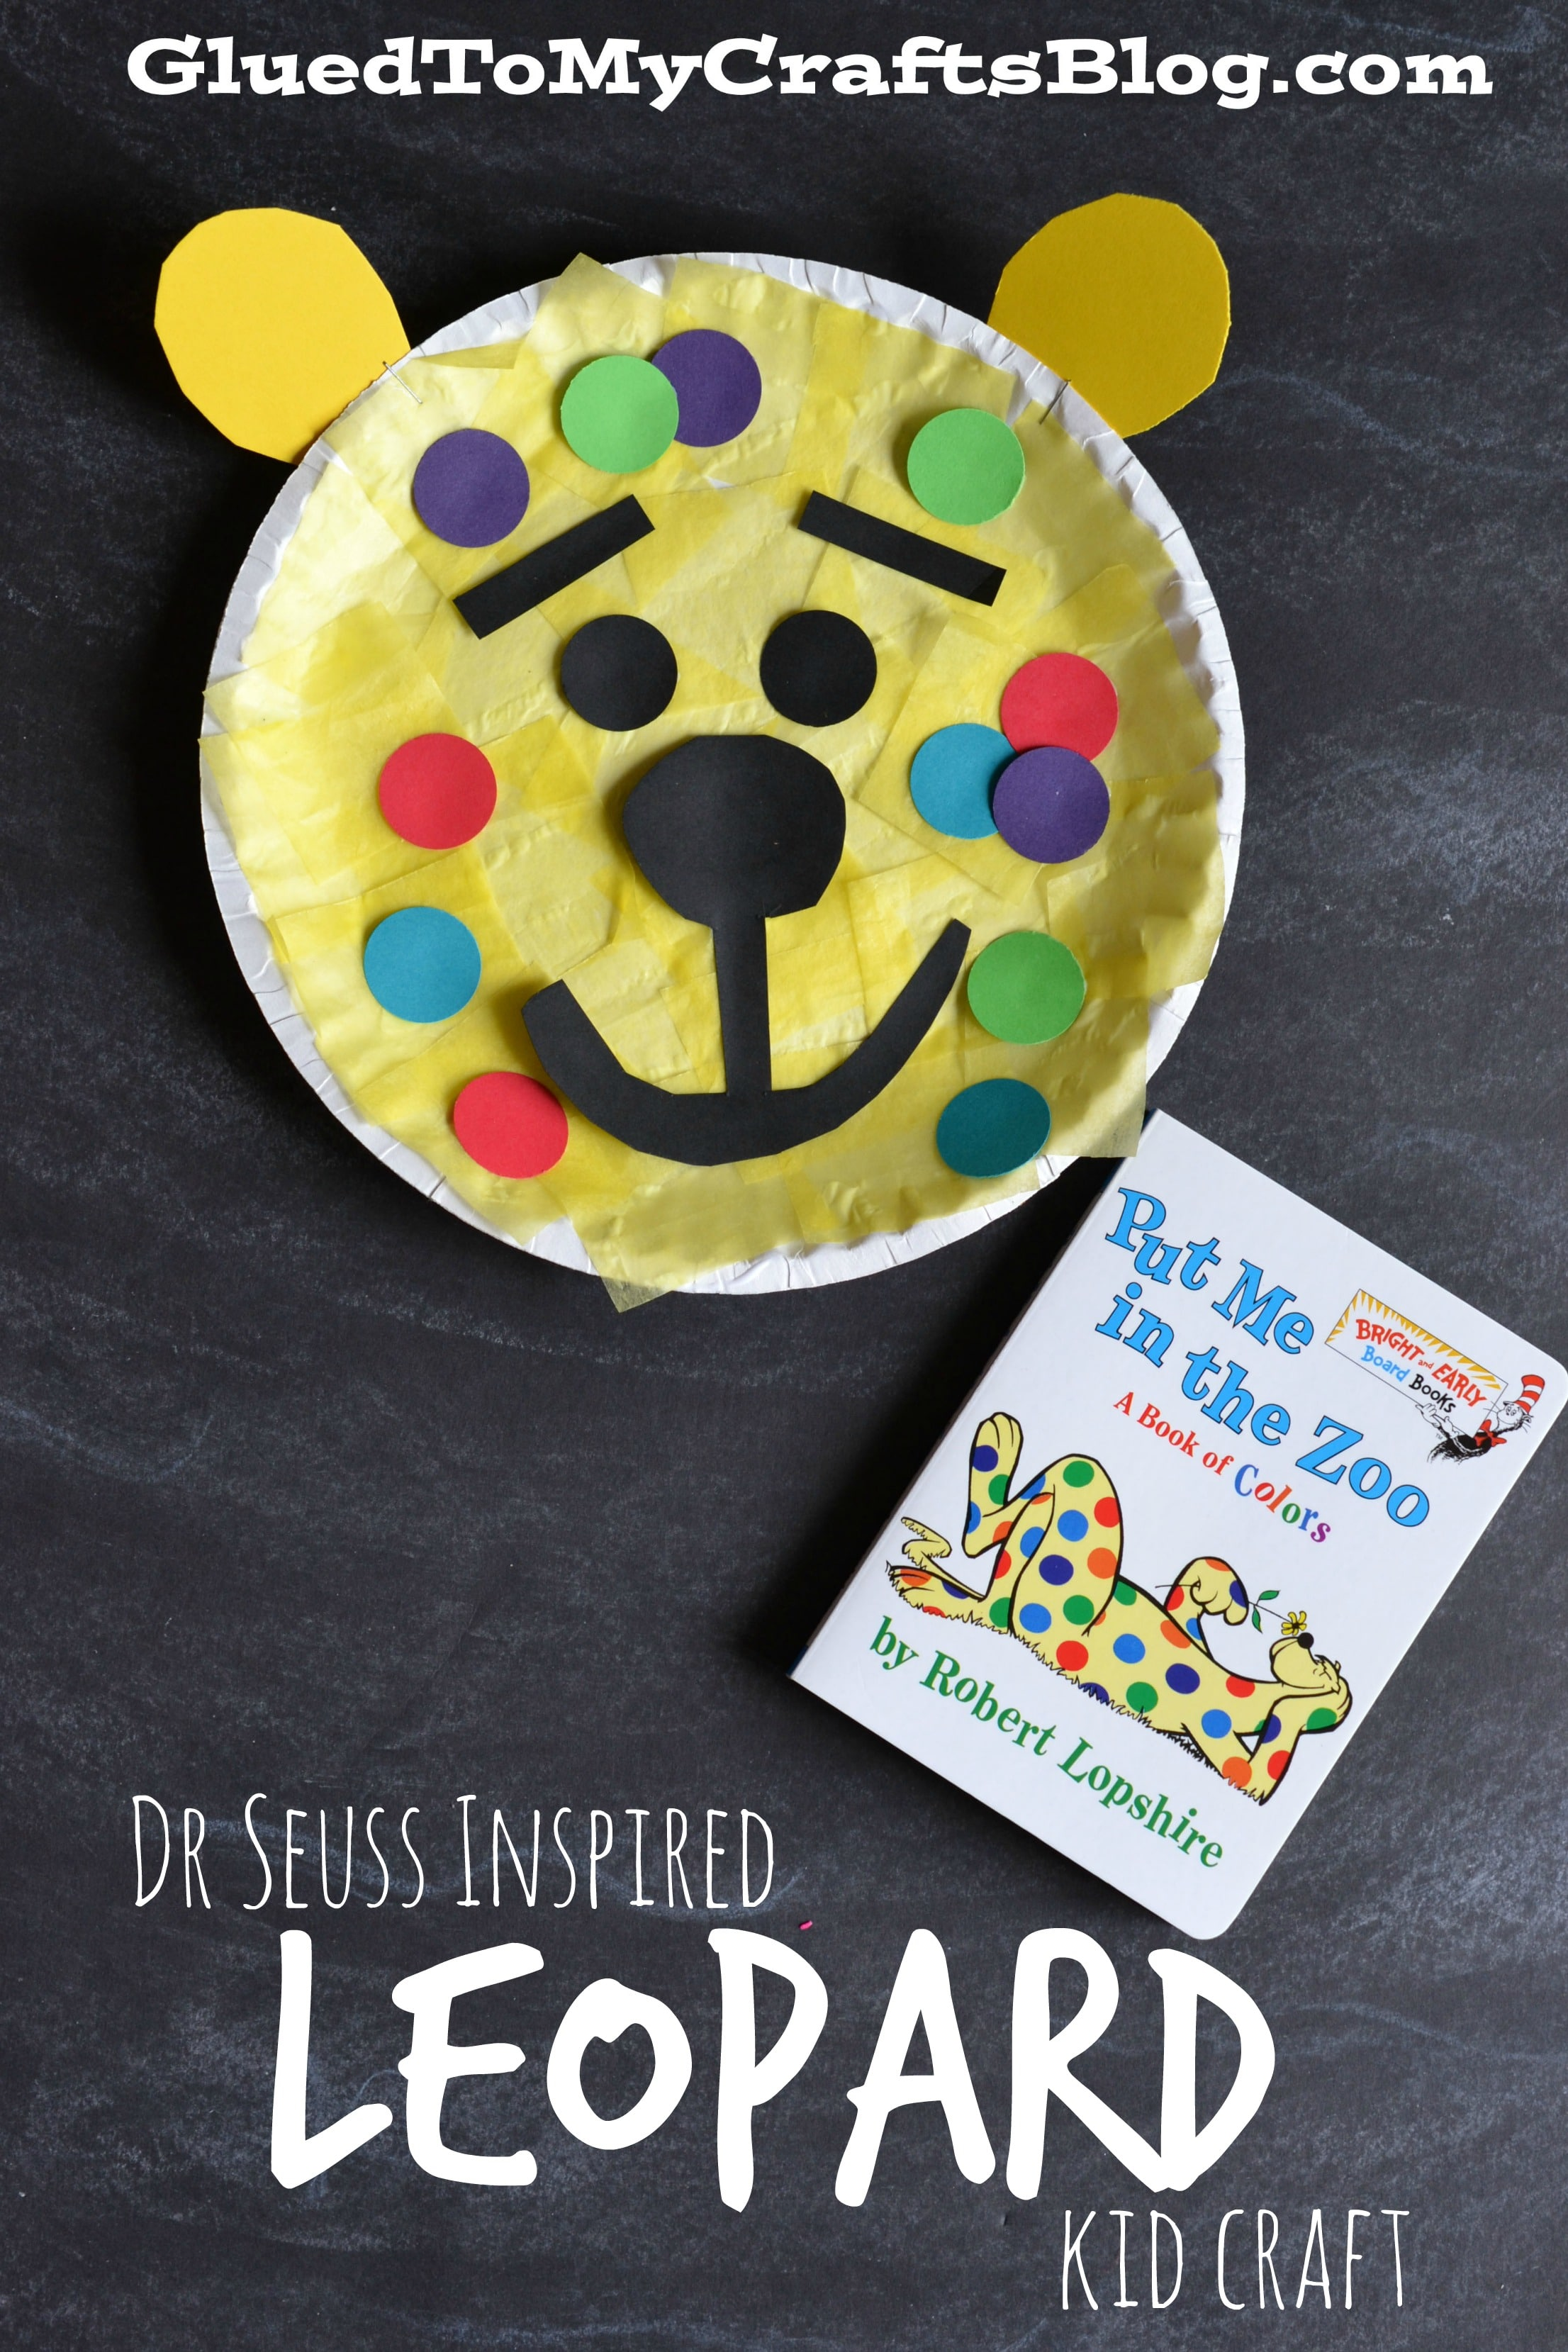 Dr Seuss Inspired Leopard Kid Craft